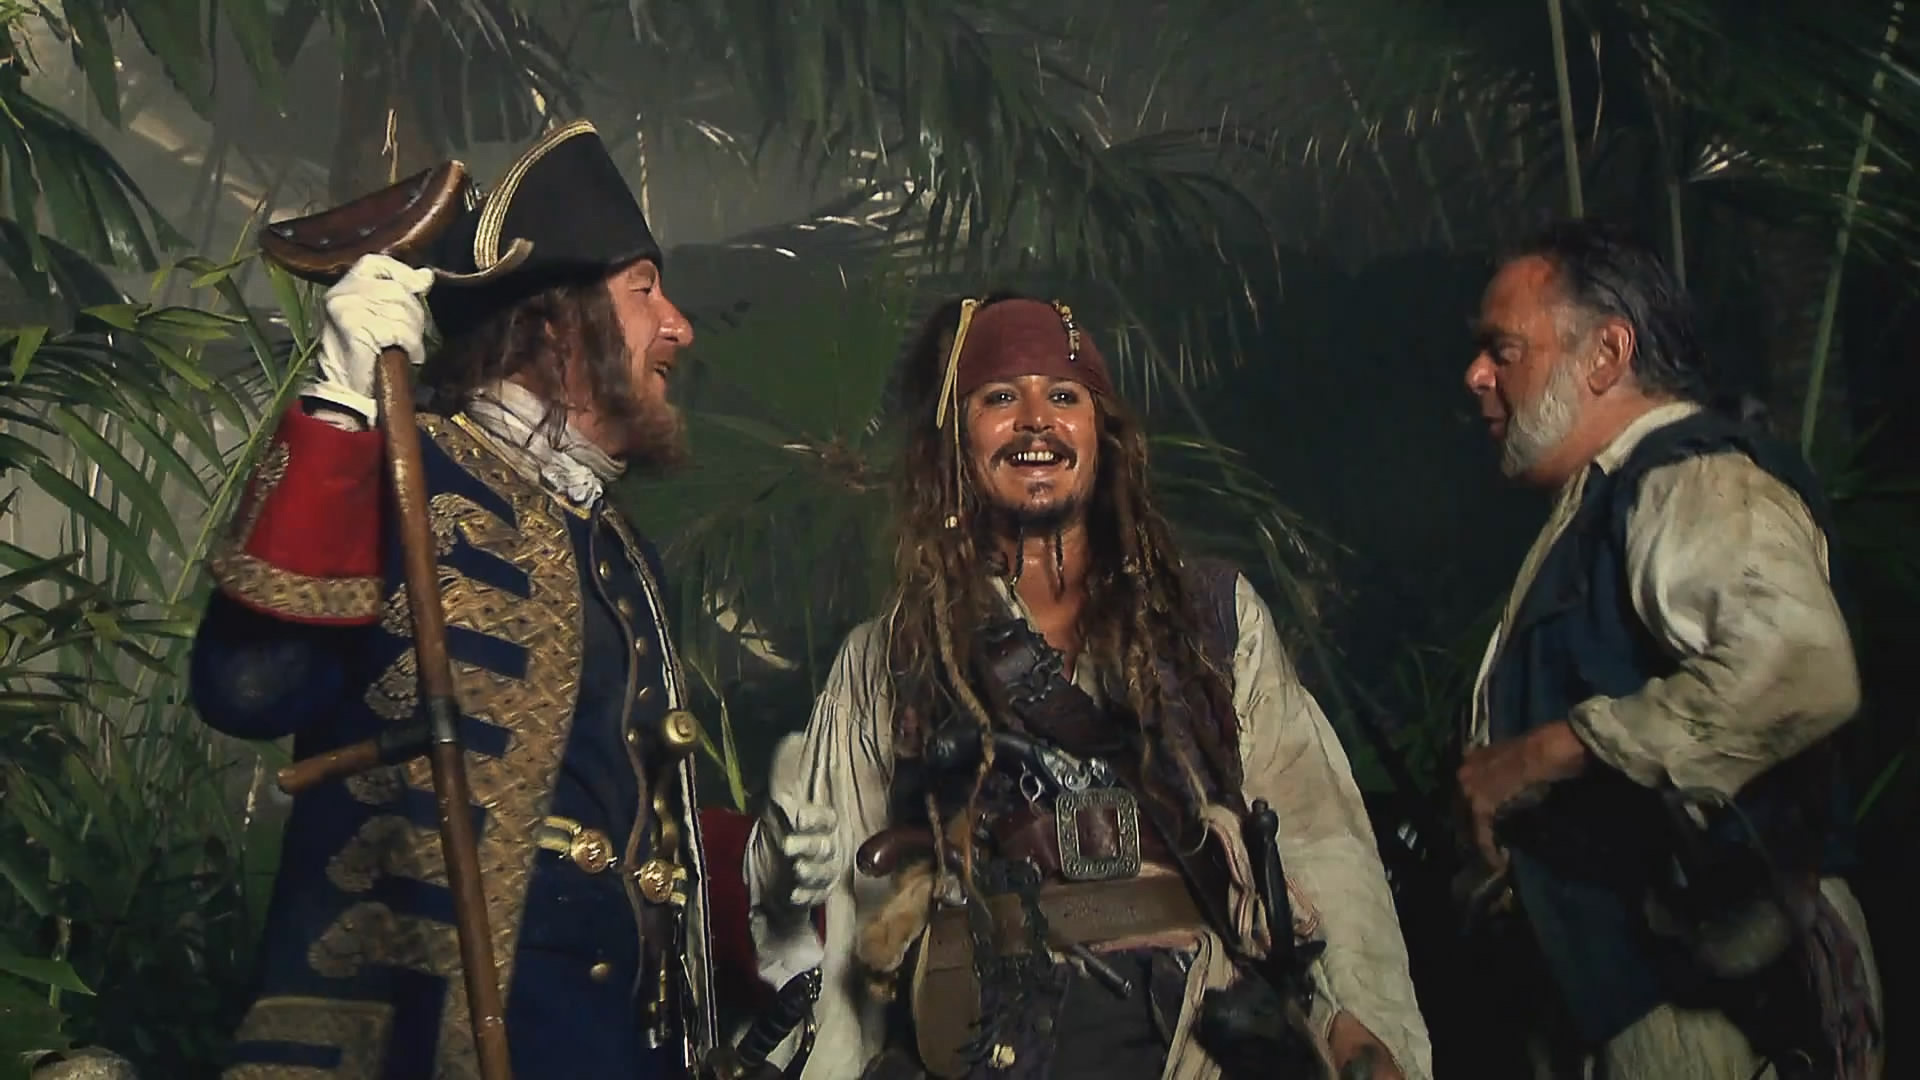 The Pirates Of The Caribbean facts